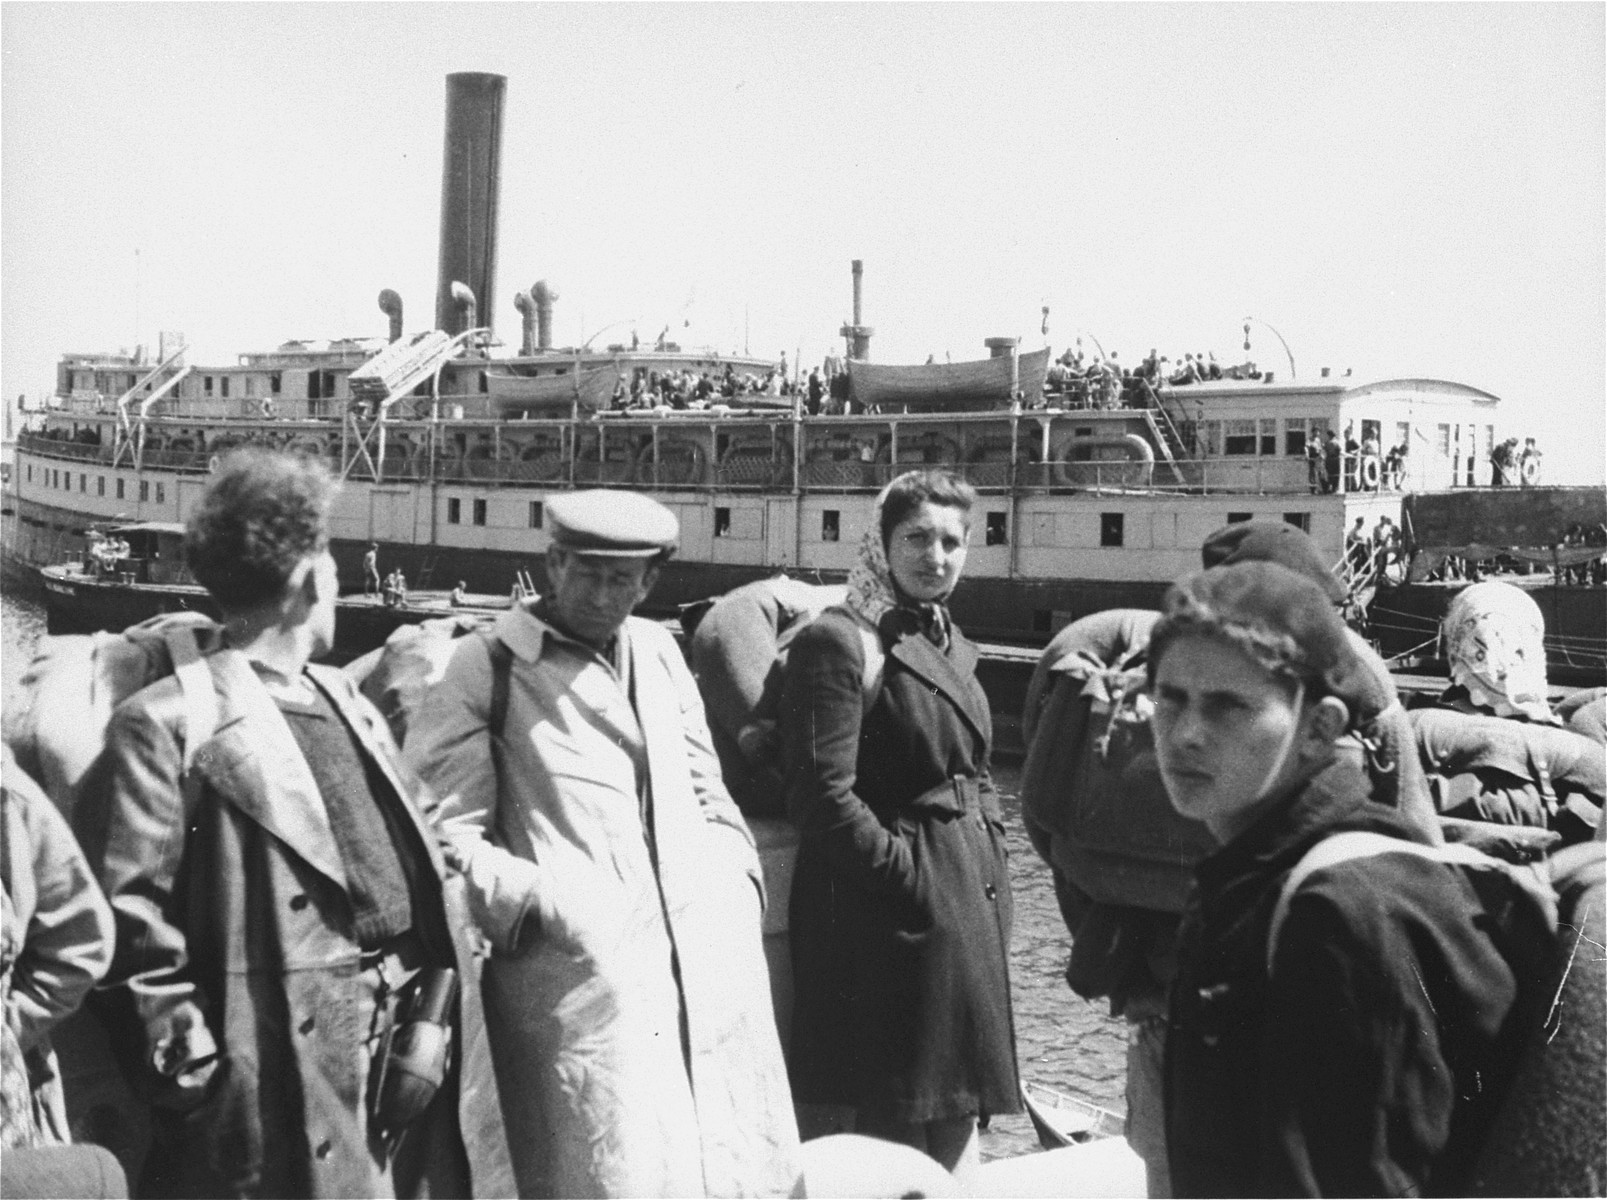 Exodus 1947 refugees wait to board the President Warfield on a quay in Sete's harbor.